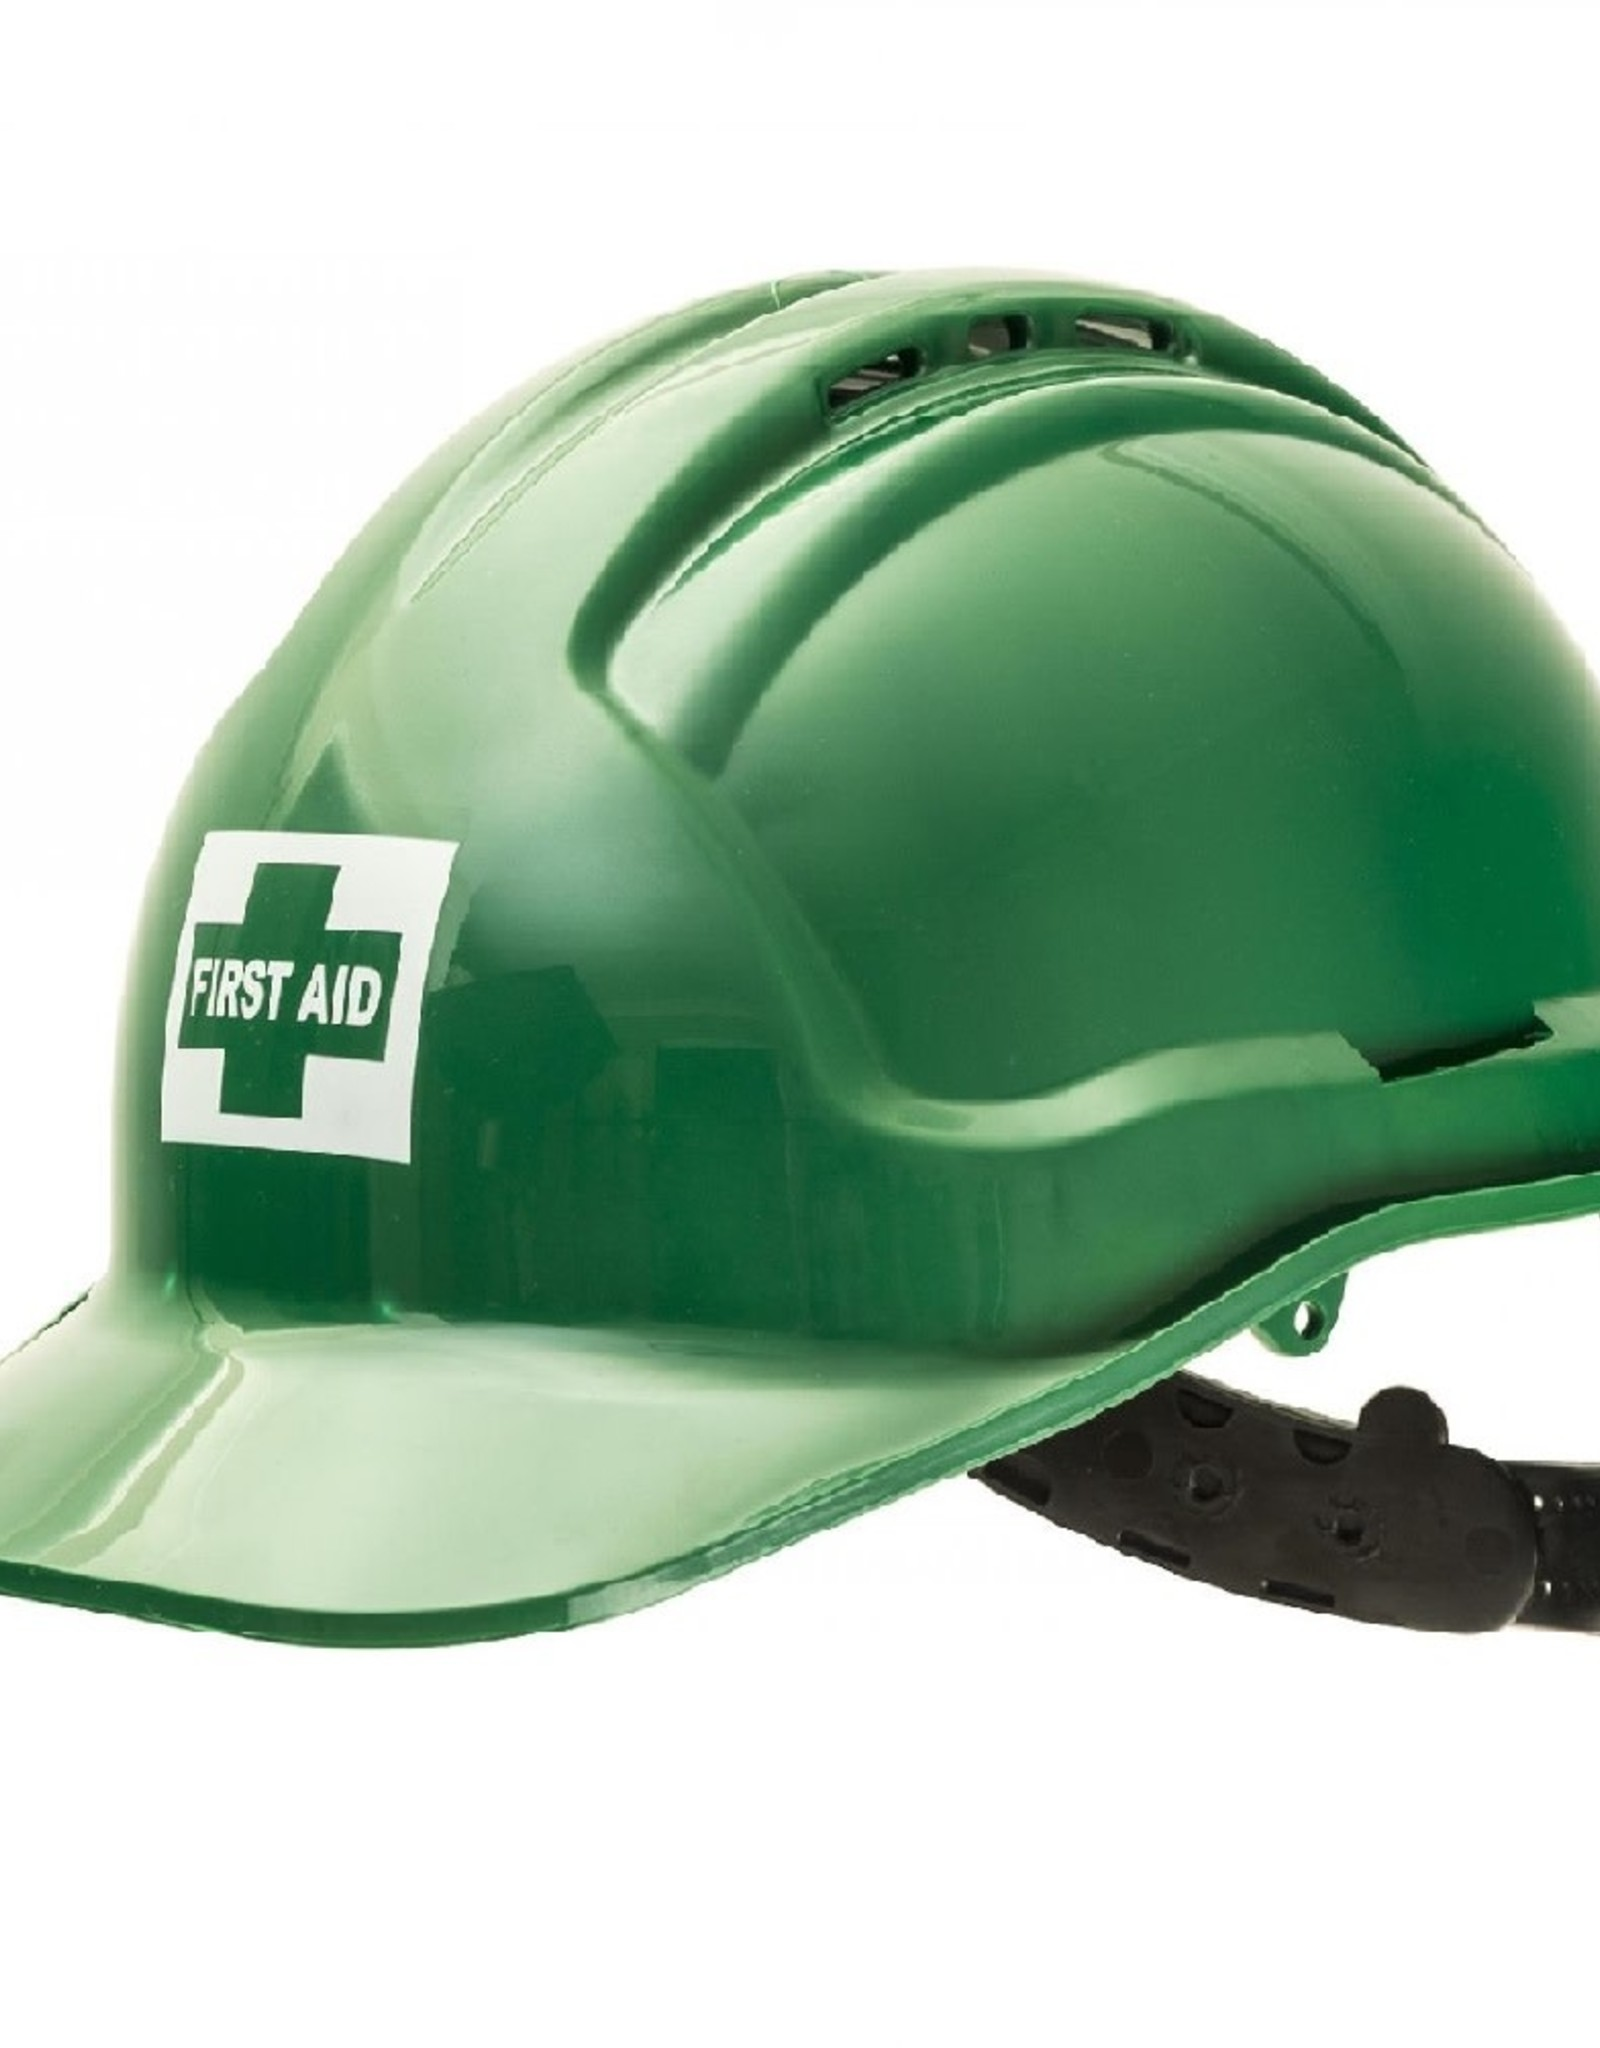 Force360 Force360 First Aid Hard Hat - Green